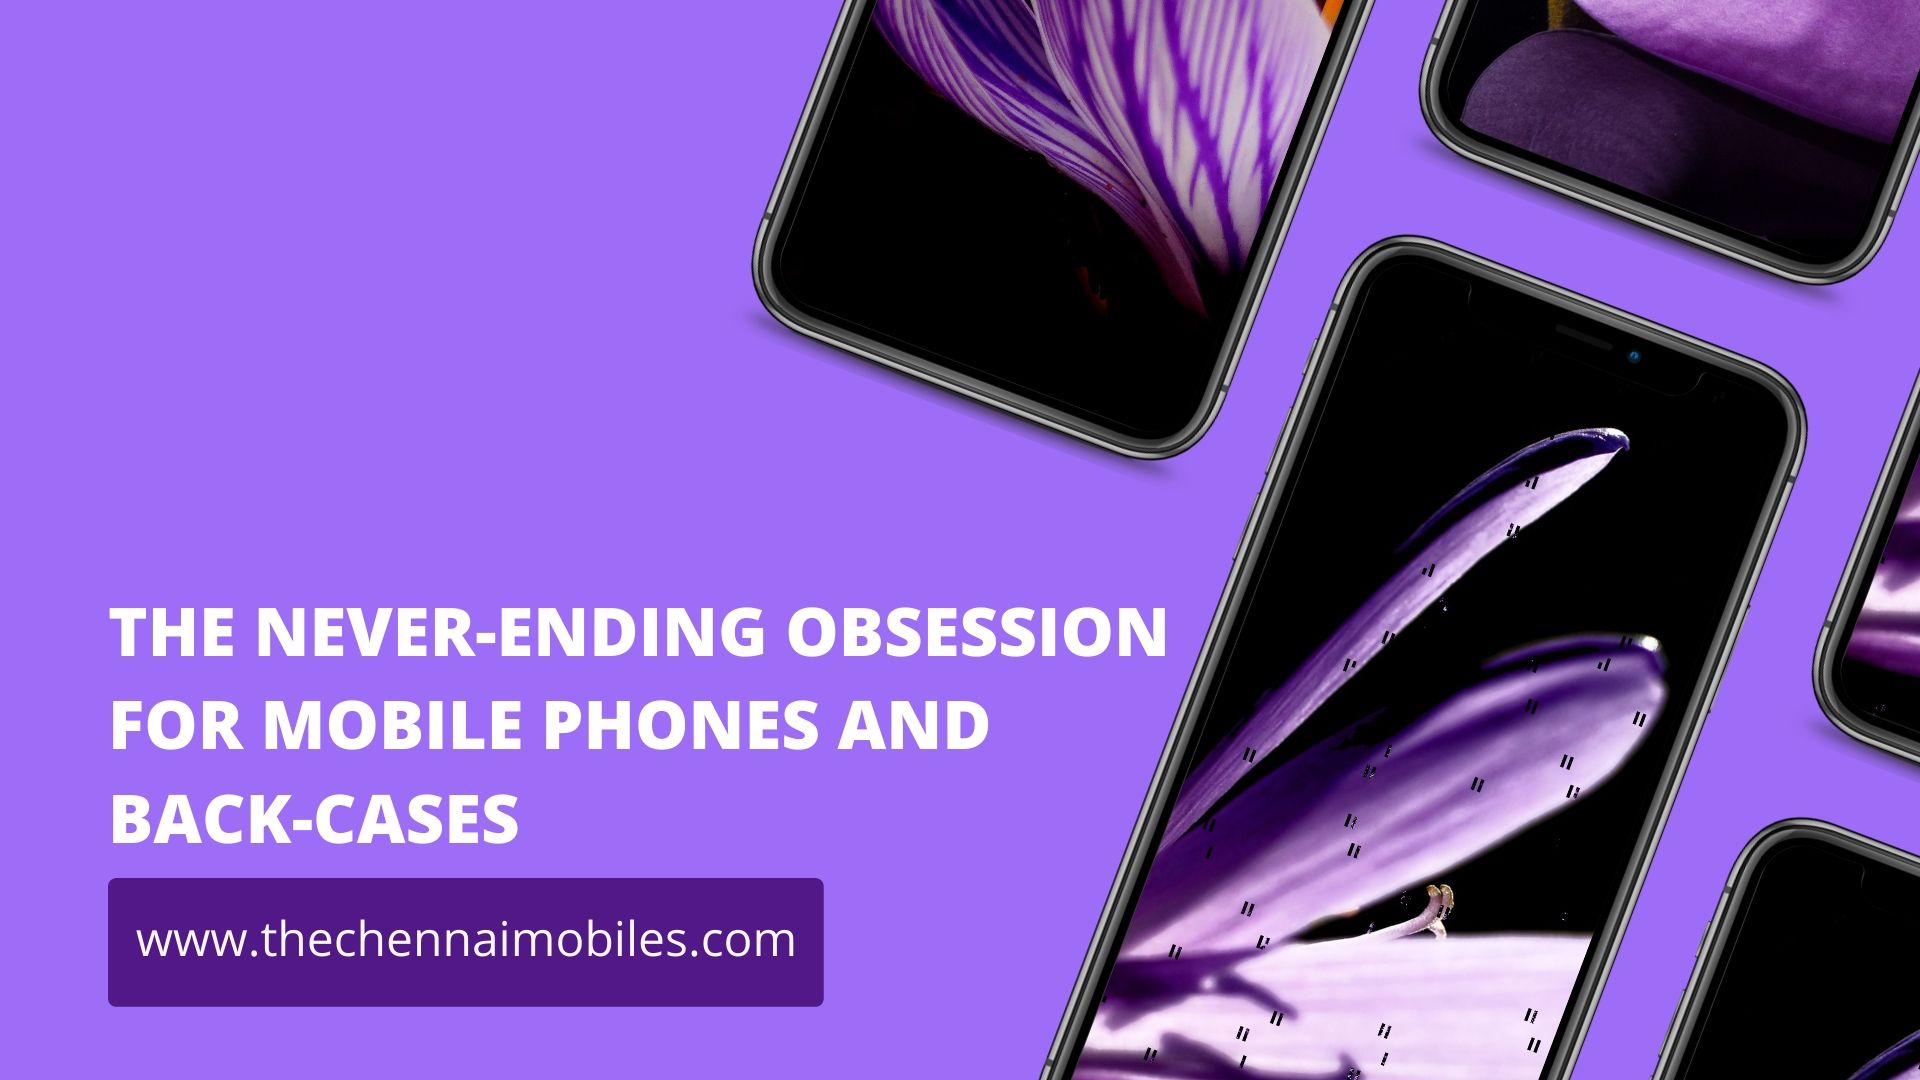 The Never – Ending Obsession For Mobile Phones and Back Cases